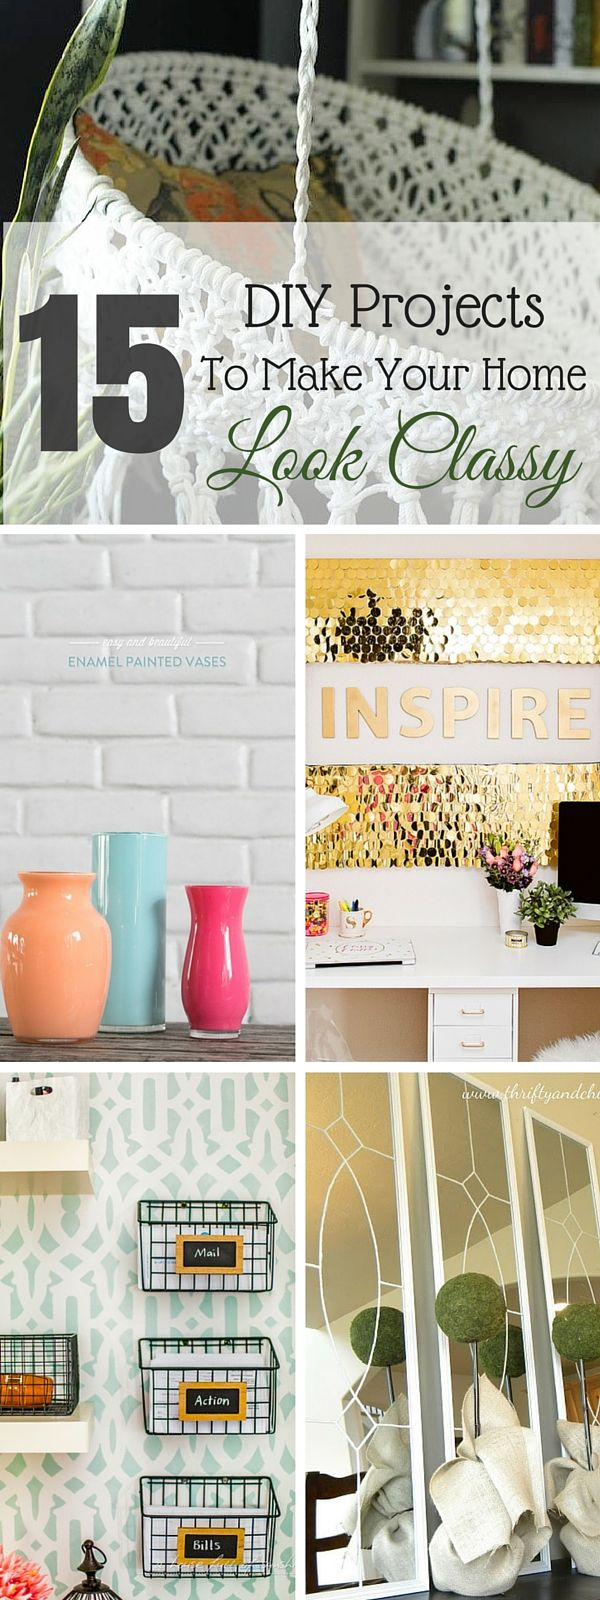 119 best home ideas images on pinterest kitchen home and 15 diy projects to make your home look classy